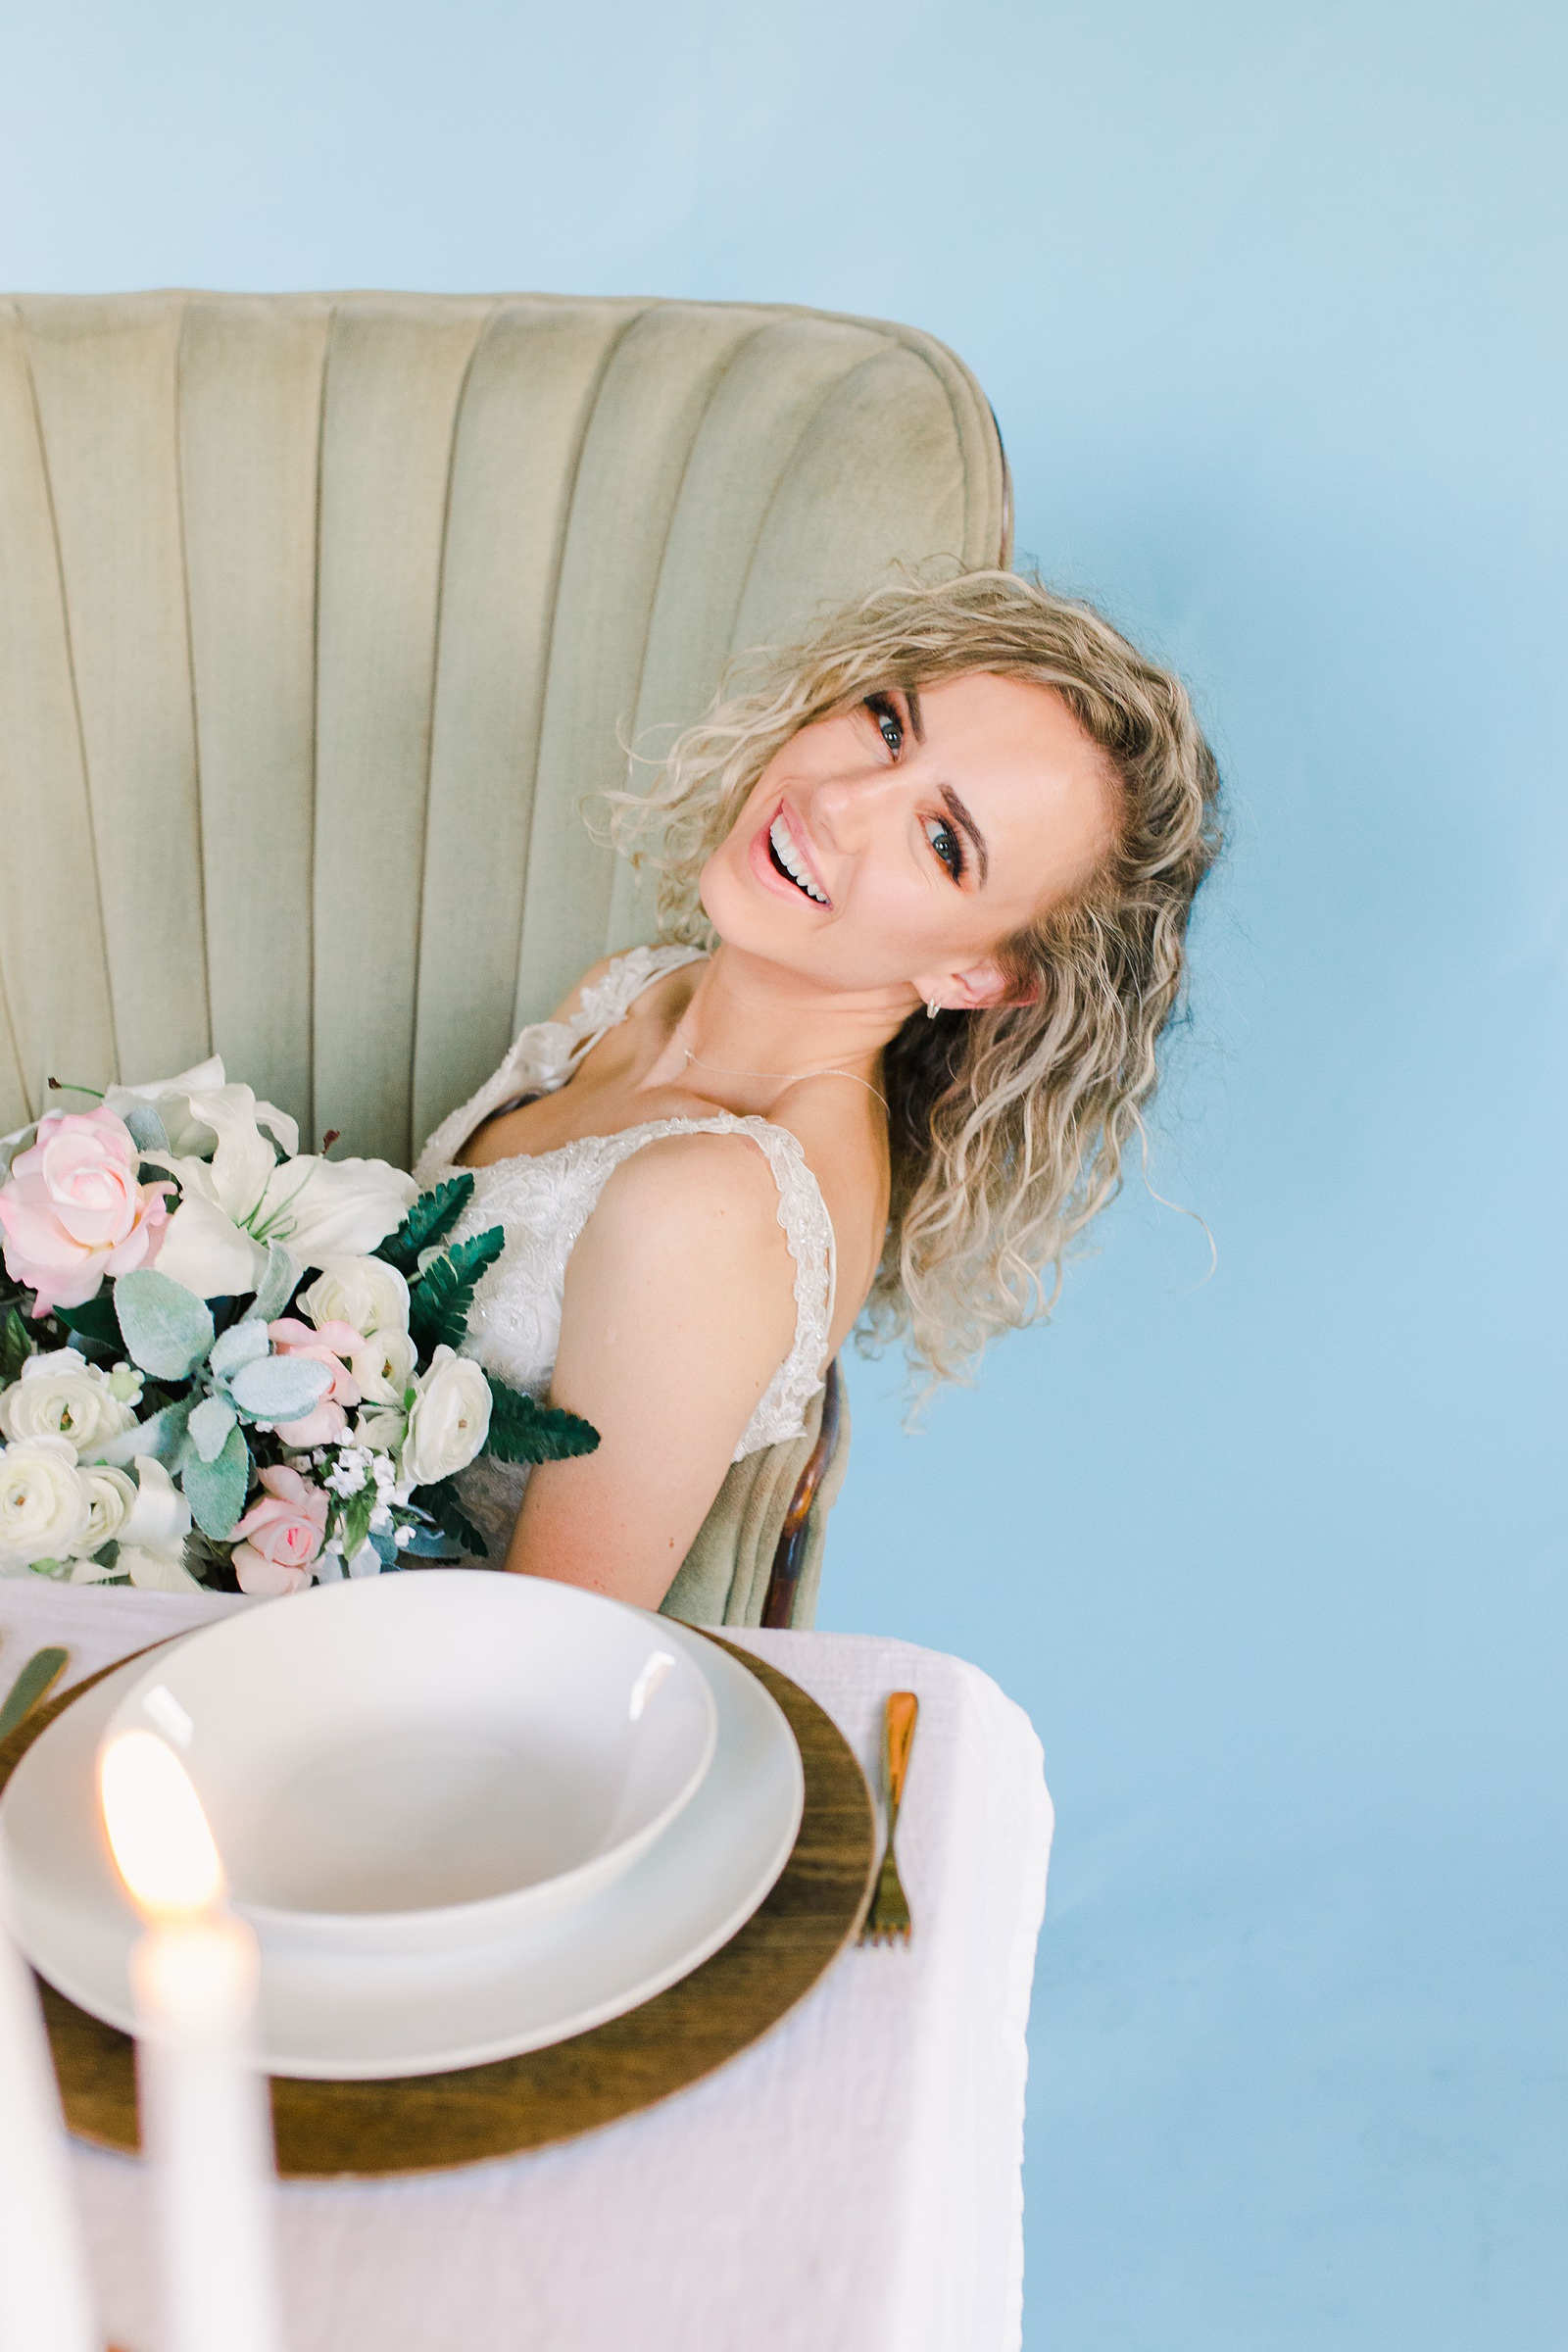 Utah wedding photography, bride with lace wedding dress and sweetheart table with greenery garland with eucalyptus and white flowers and blue wall